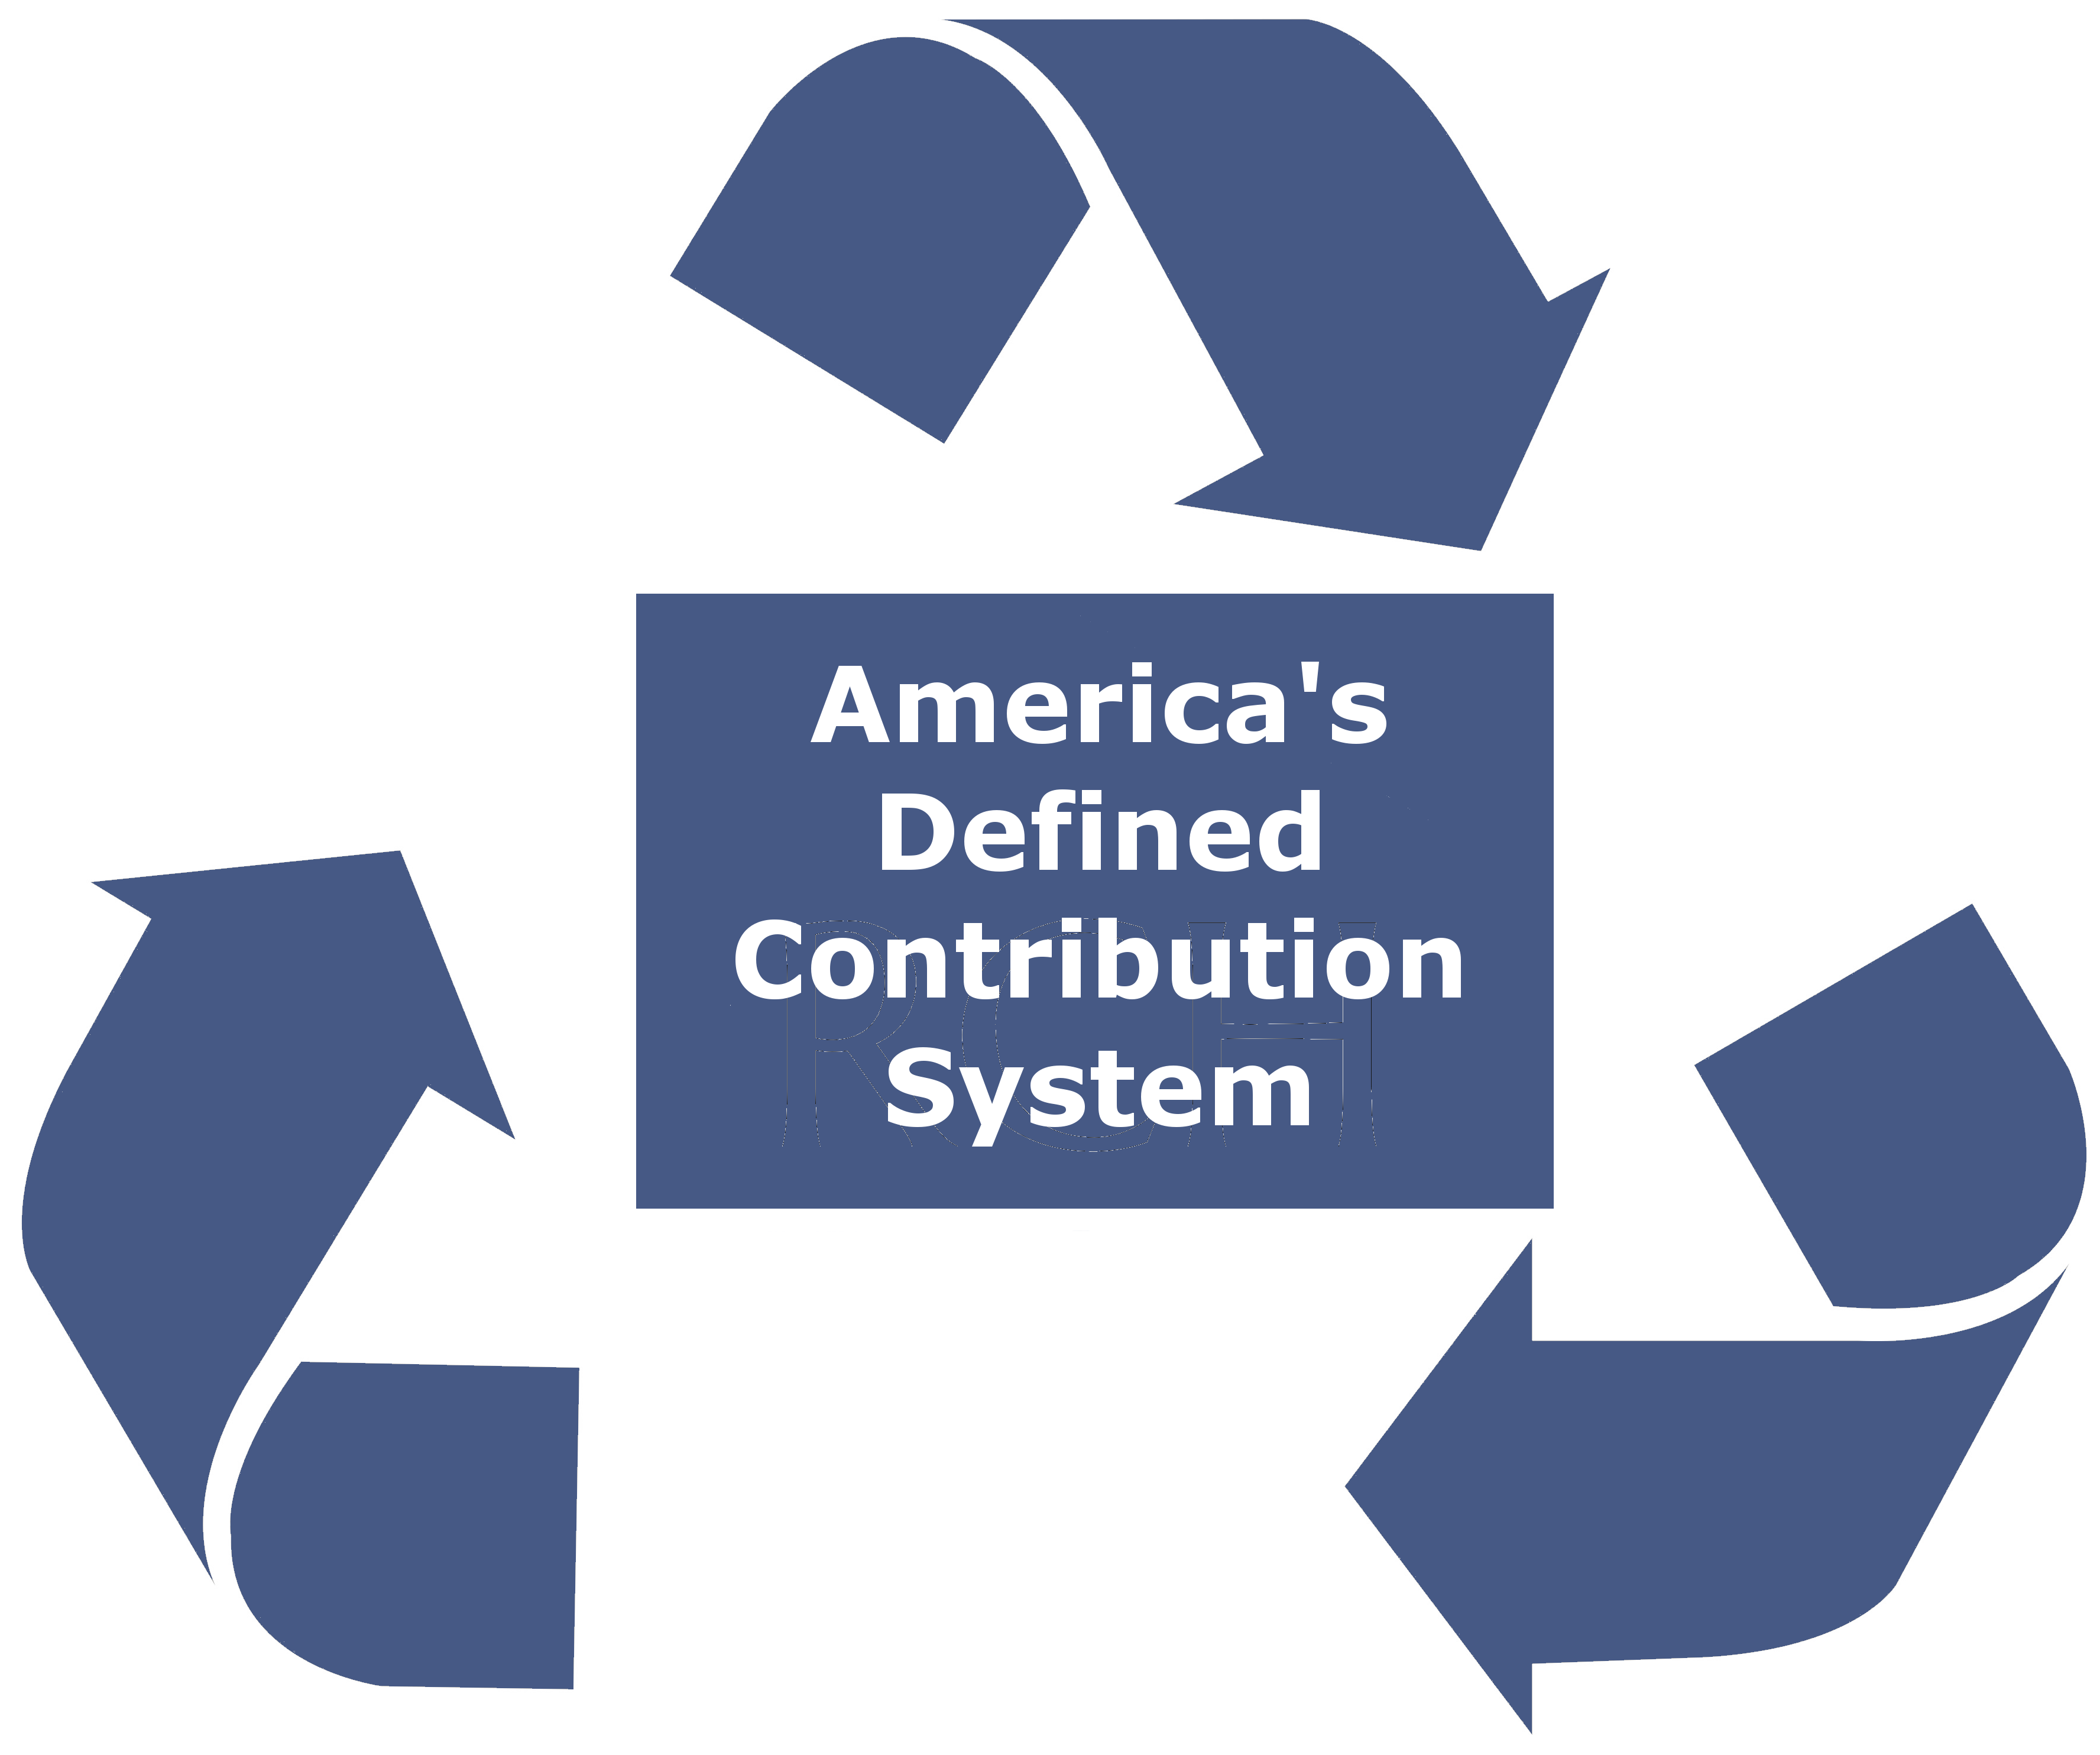 America's defined contribution system is unsustainable Recycle